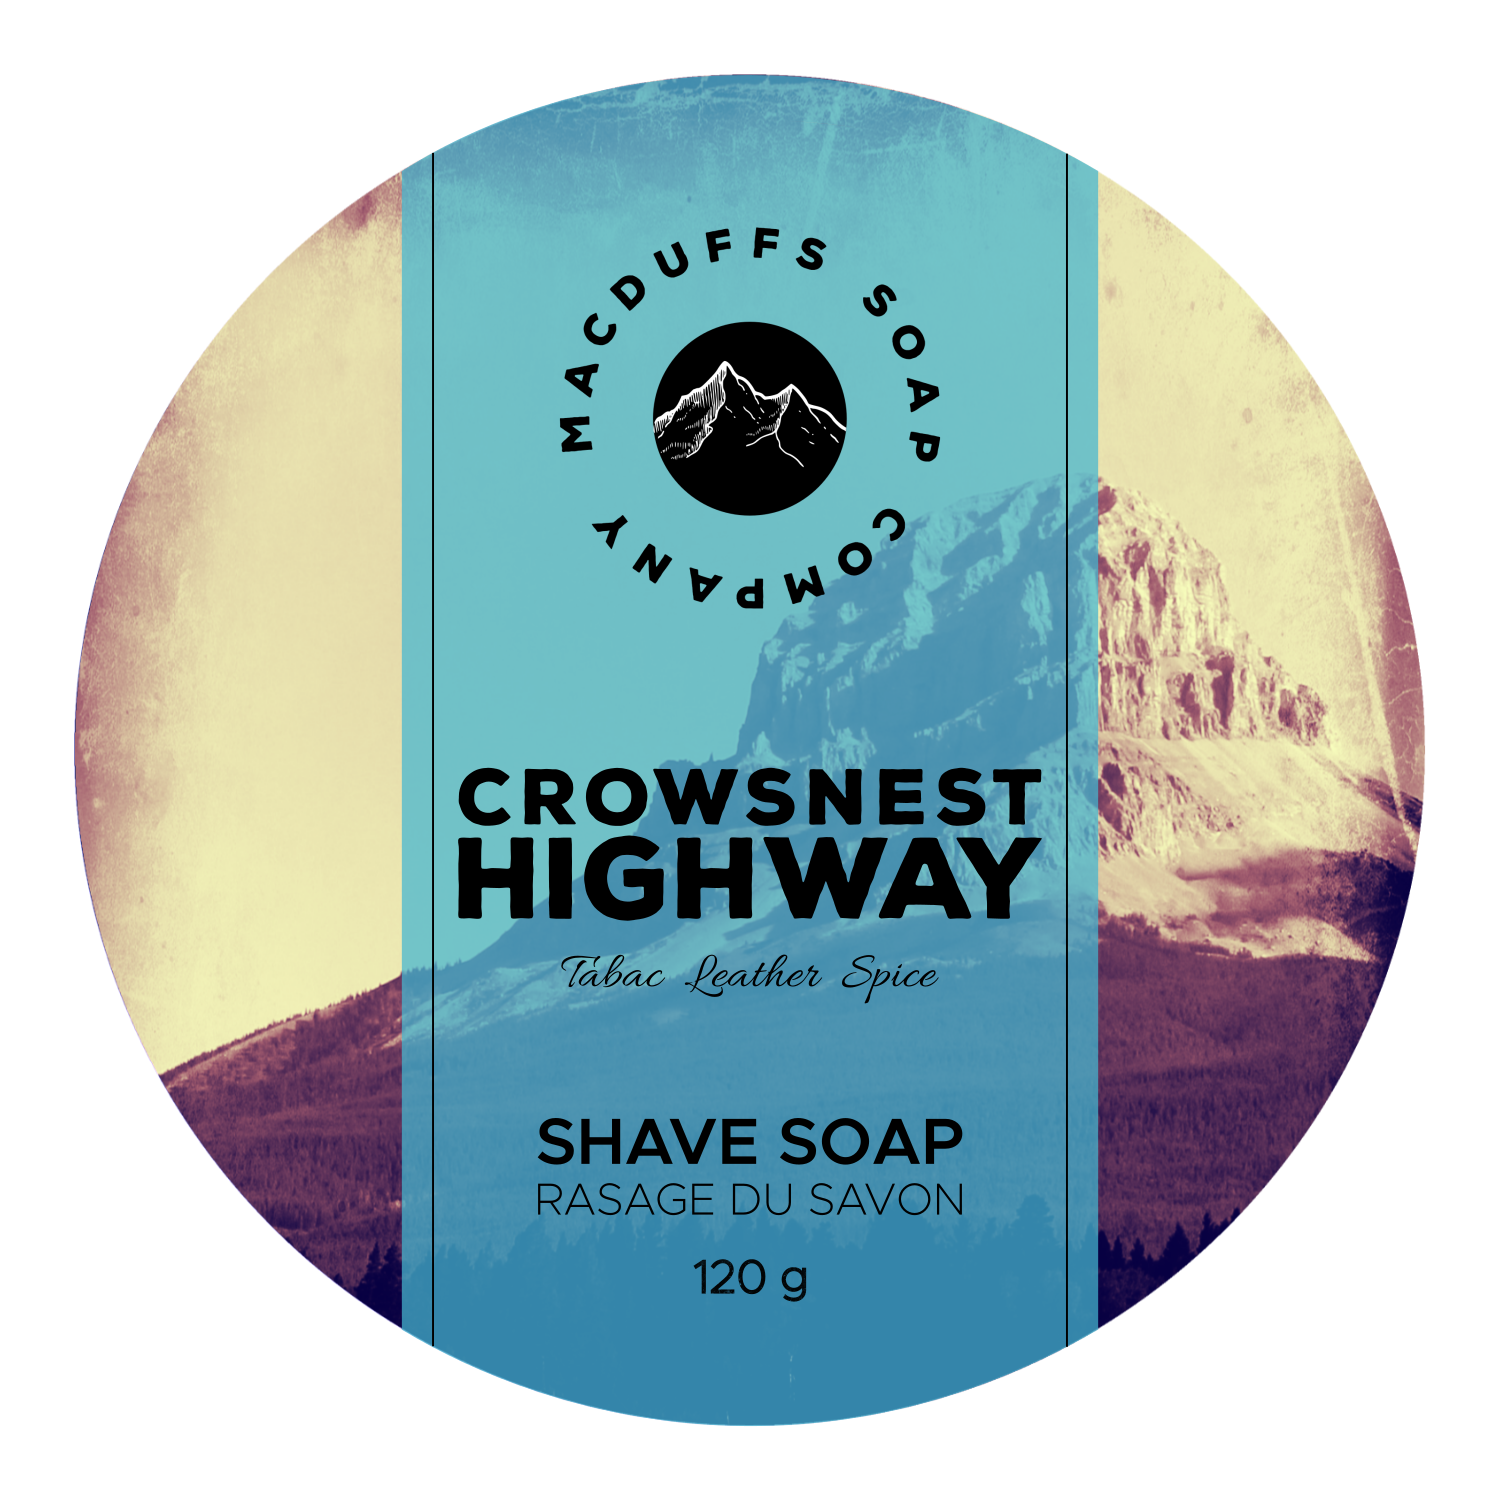 Crowsnest Shave Soap